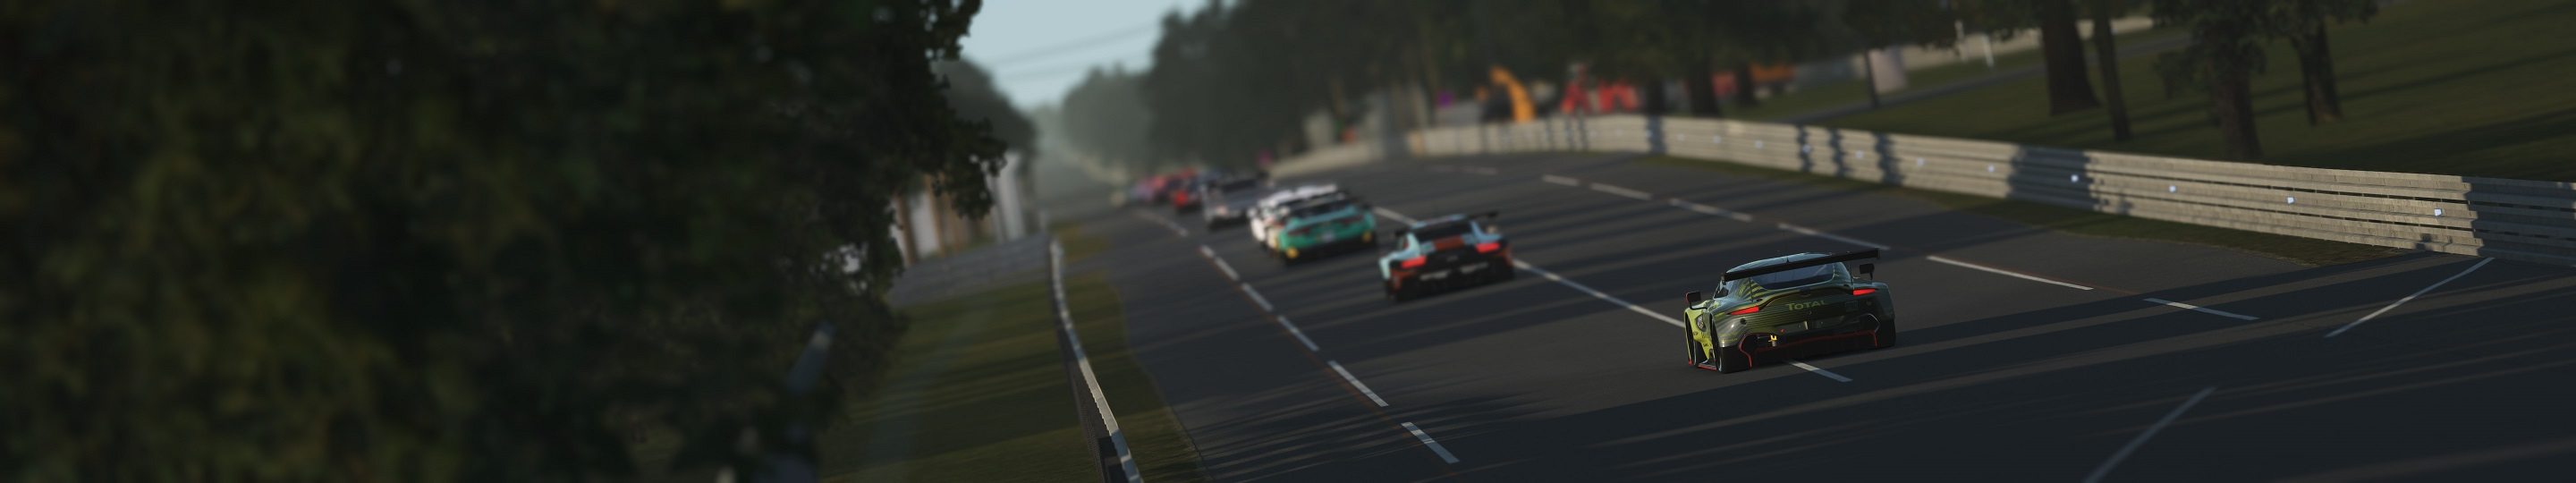 2a ASTON GTE at S397 LeMANS copy.jpg